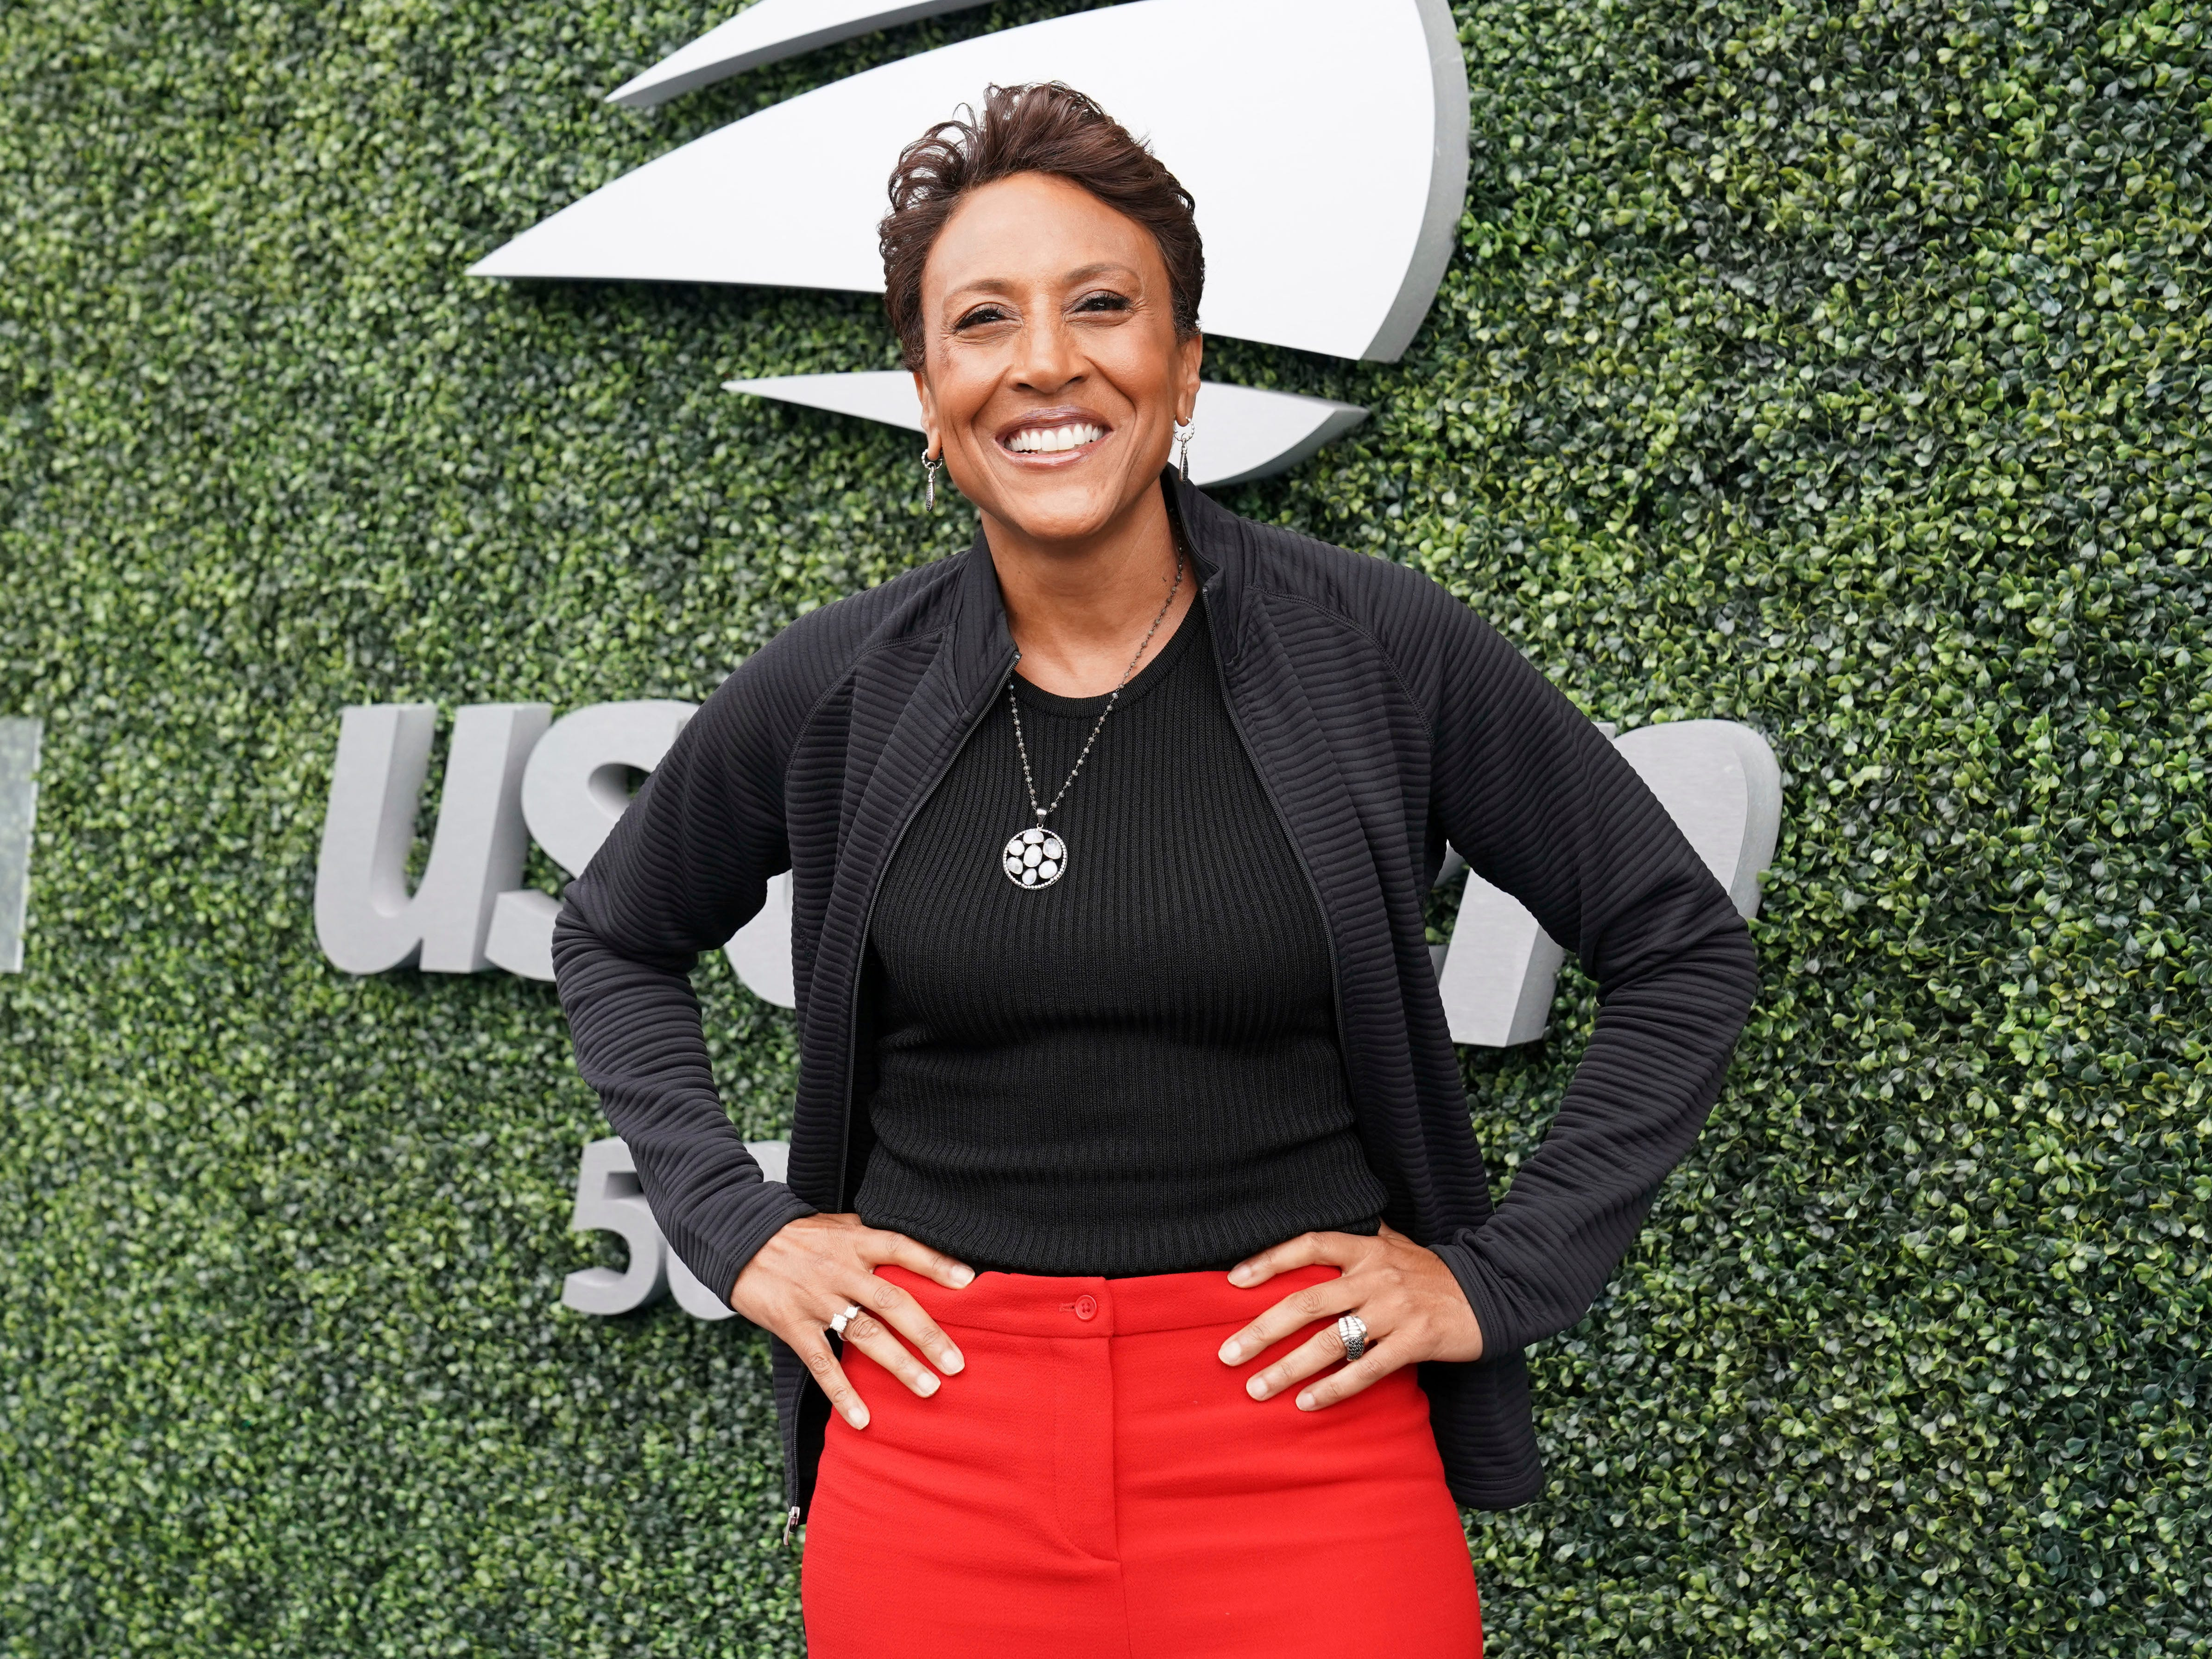 """Good Morning America"" host Robin Roberts attends the women's final between Serena Williams and Naomi Osaka."